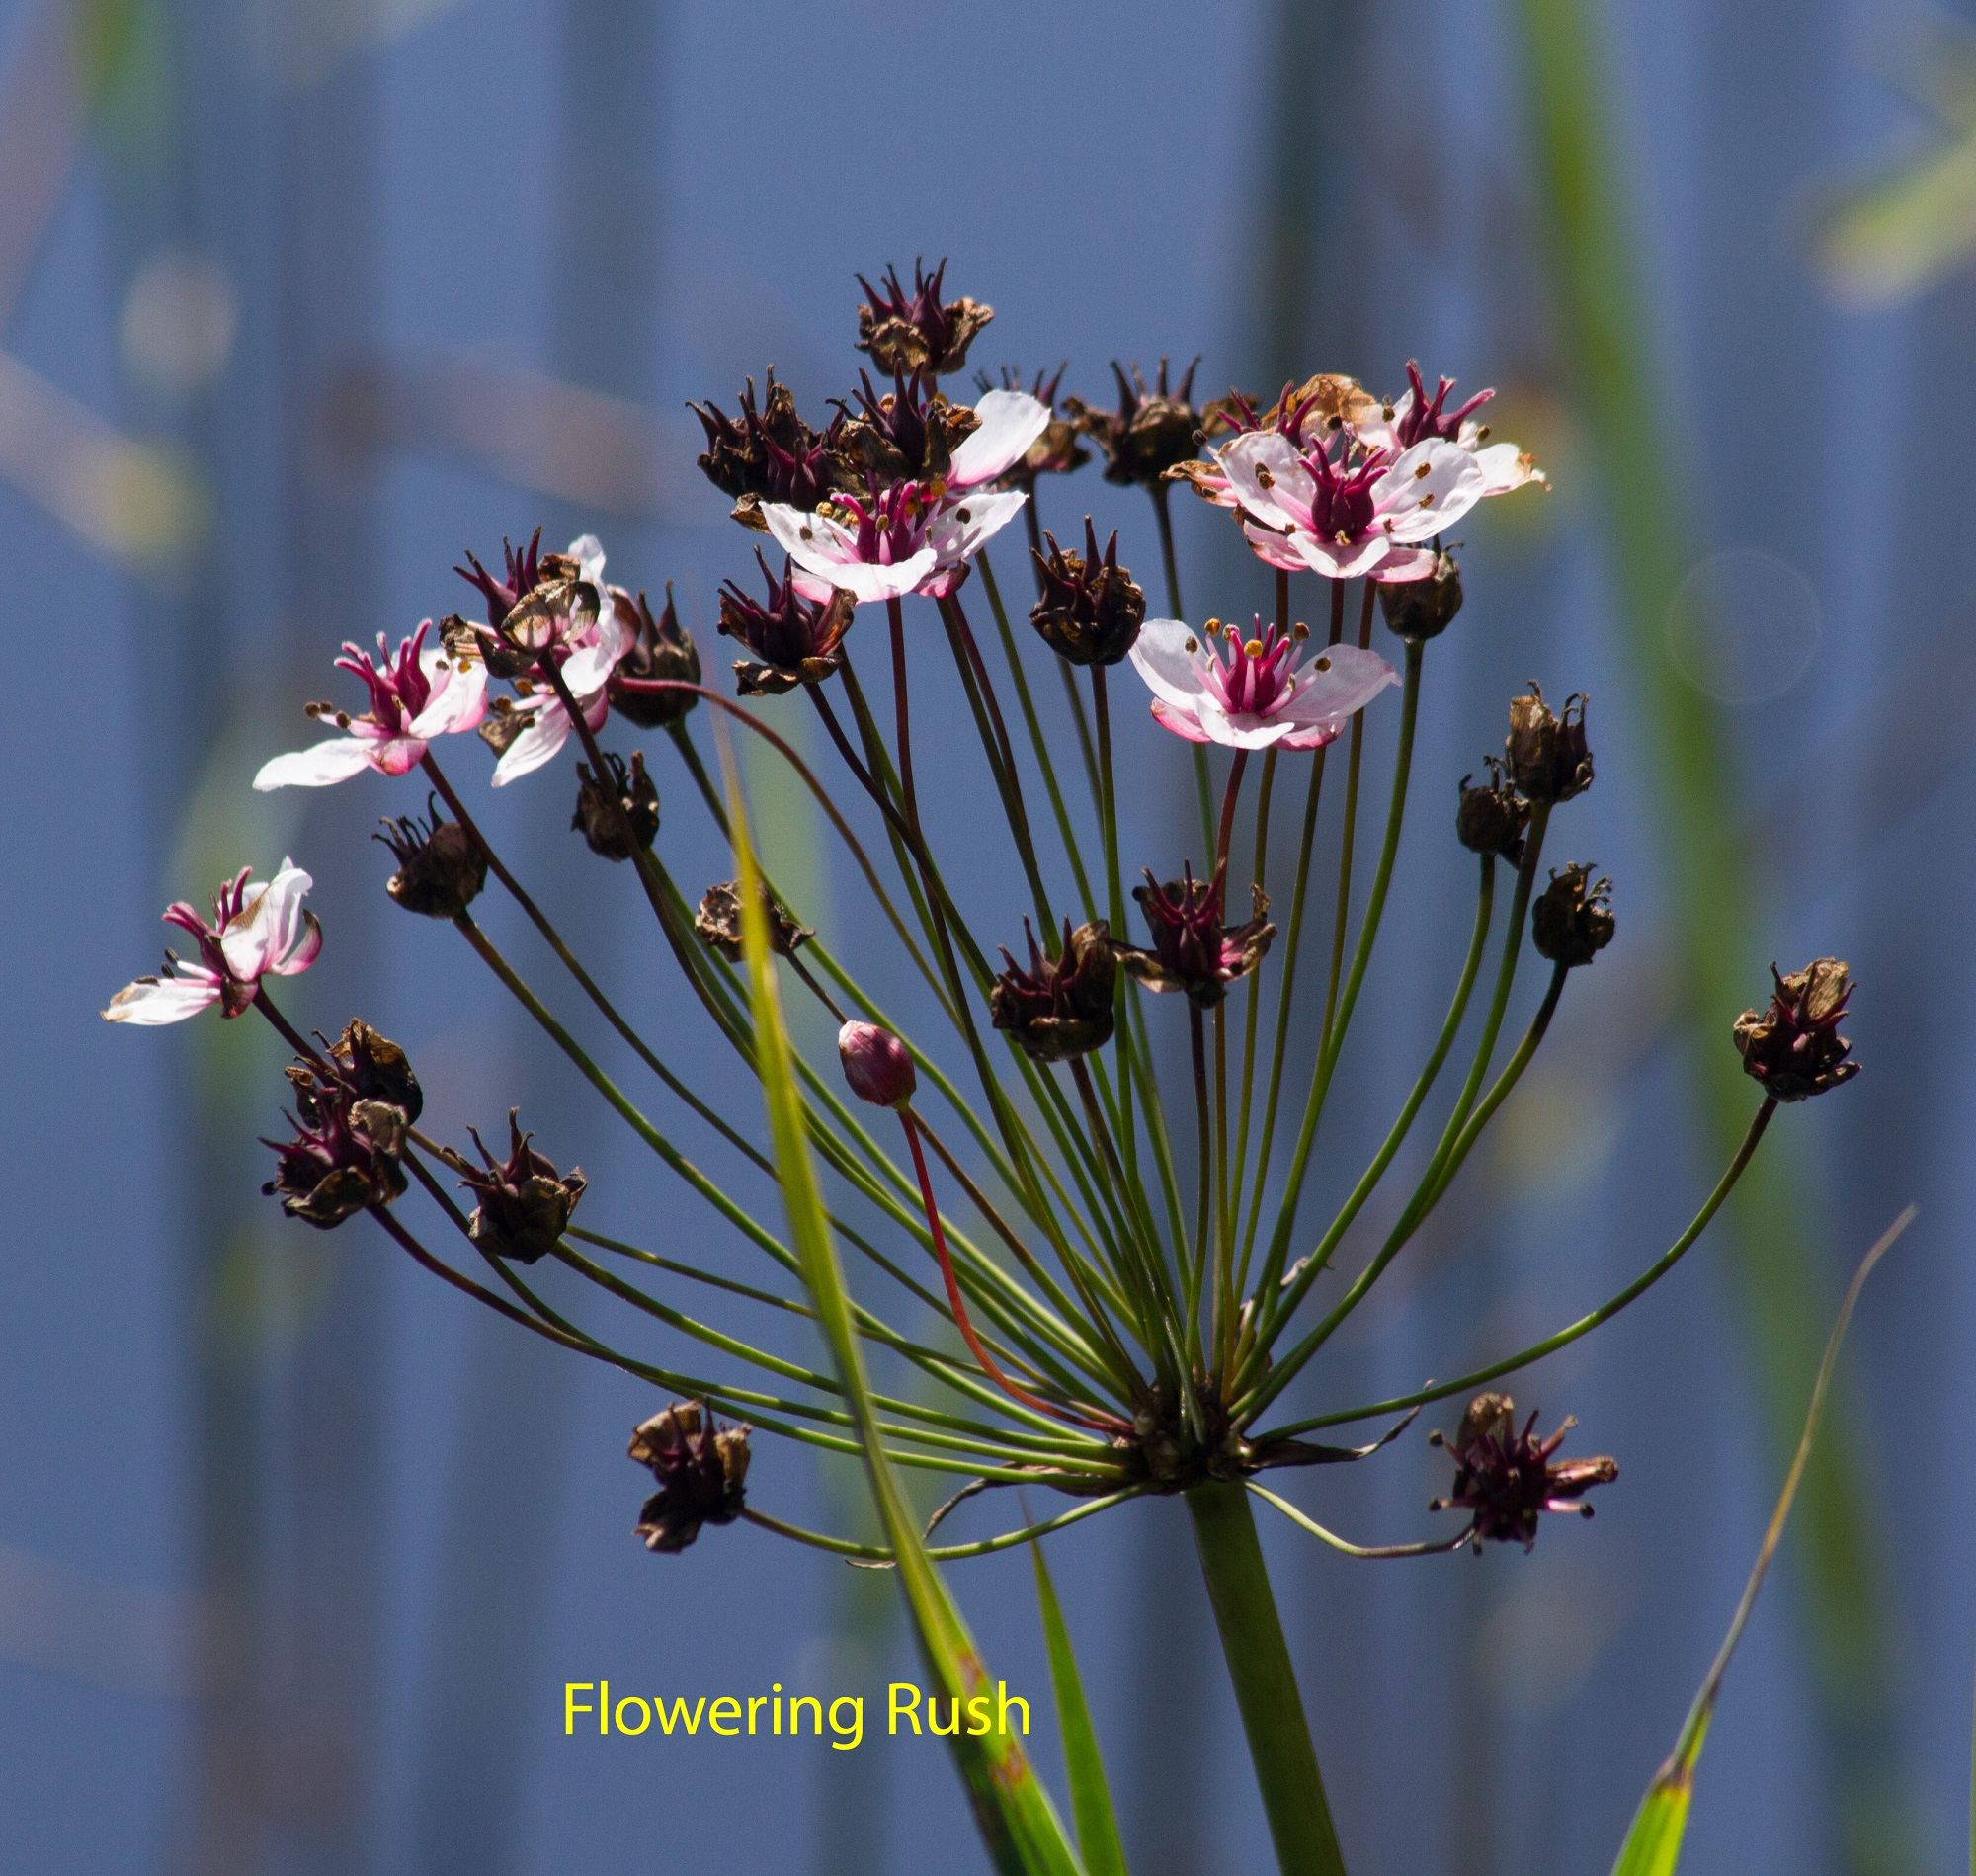 035-flowering-rush-copy1-1-a798087537f7be0b4eea32e12be7d600091967cb